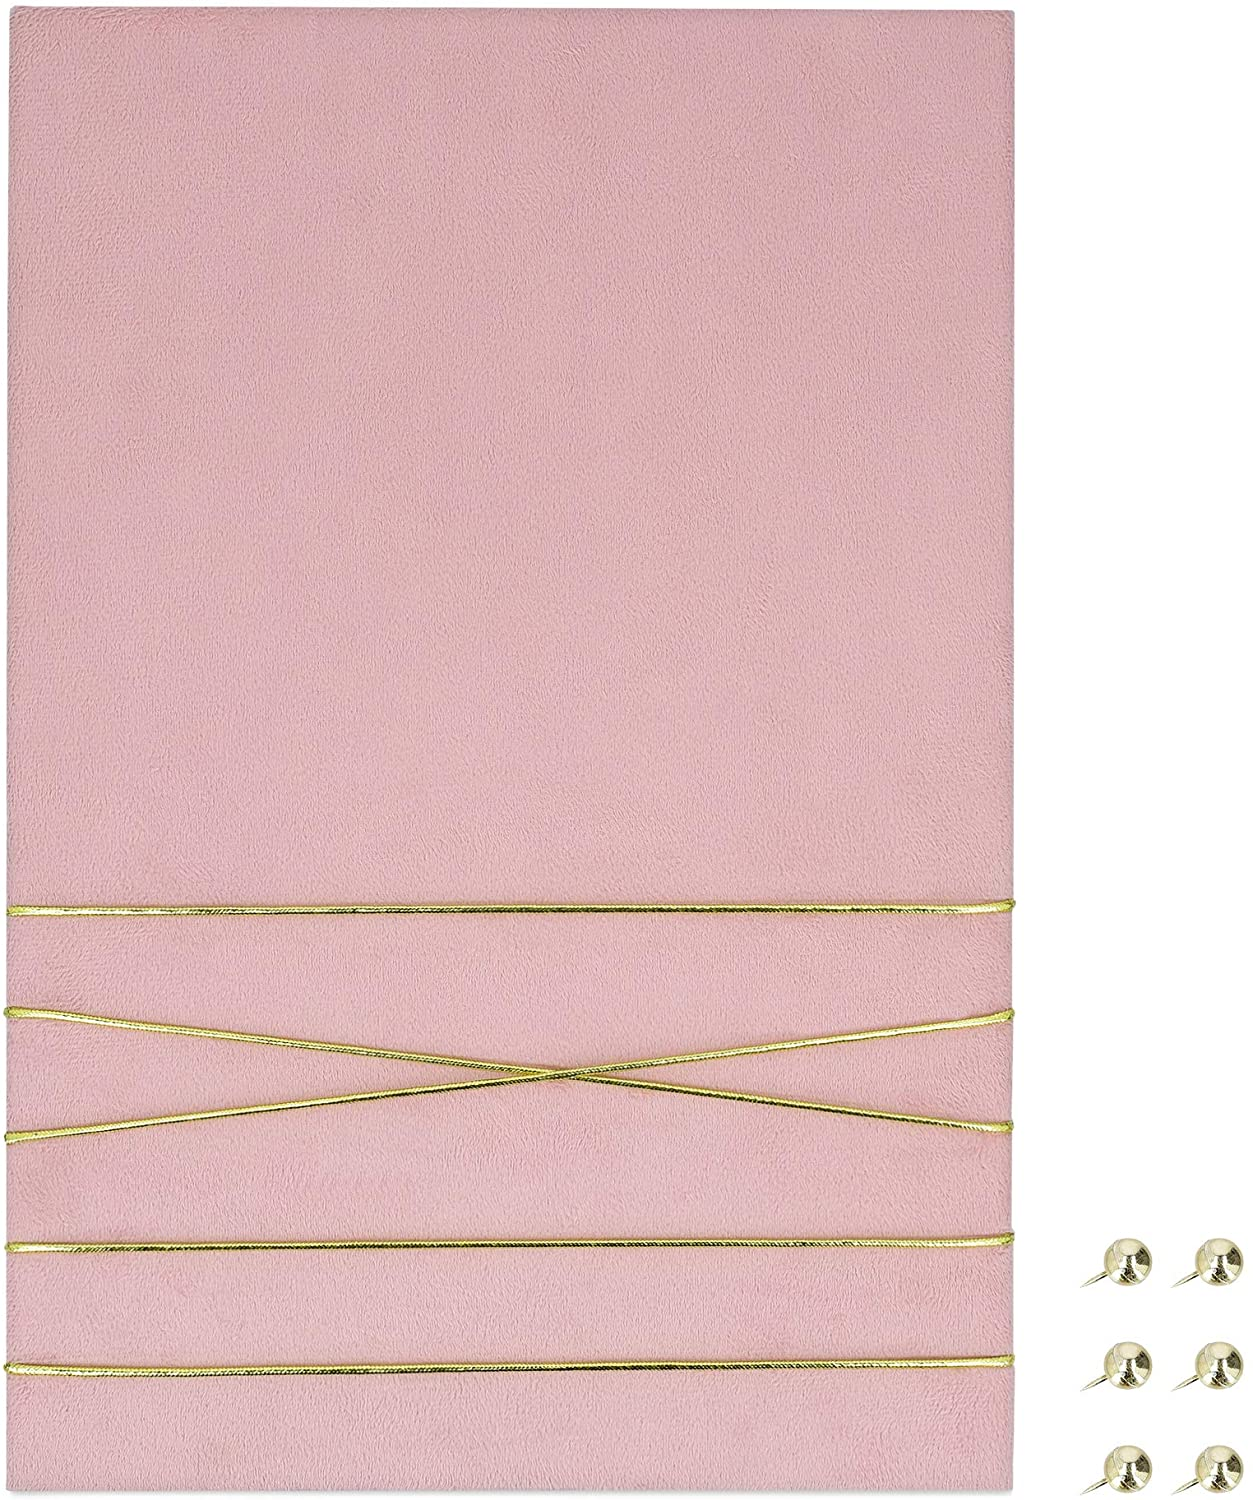 """Navaris Fabric Memo Bulletin Board - 12"""" x 17"""" Velvet Memory Board for Wall to Display Photo Collages, Pictures, Notes - Includes 6 Push Pins - Pink"""